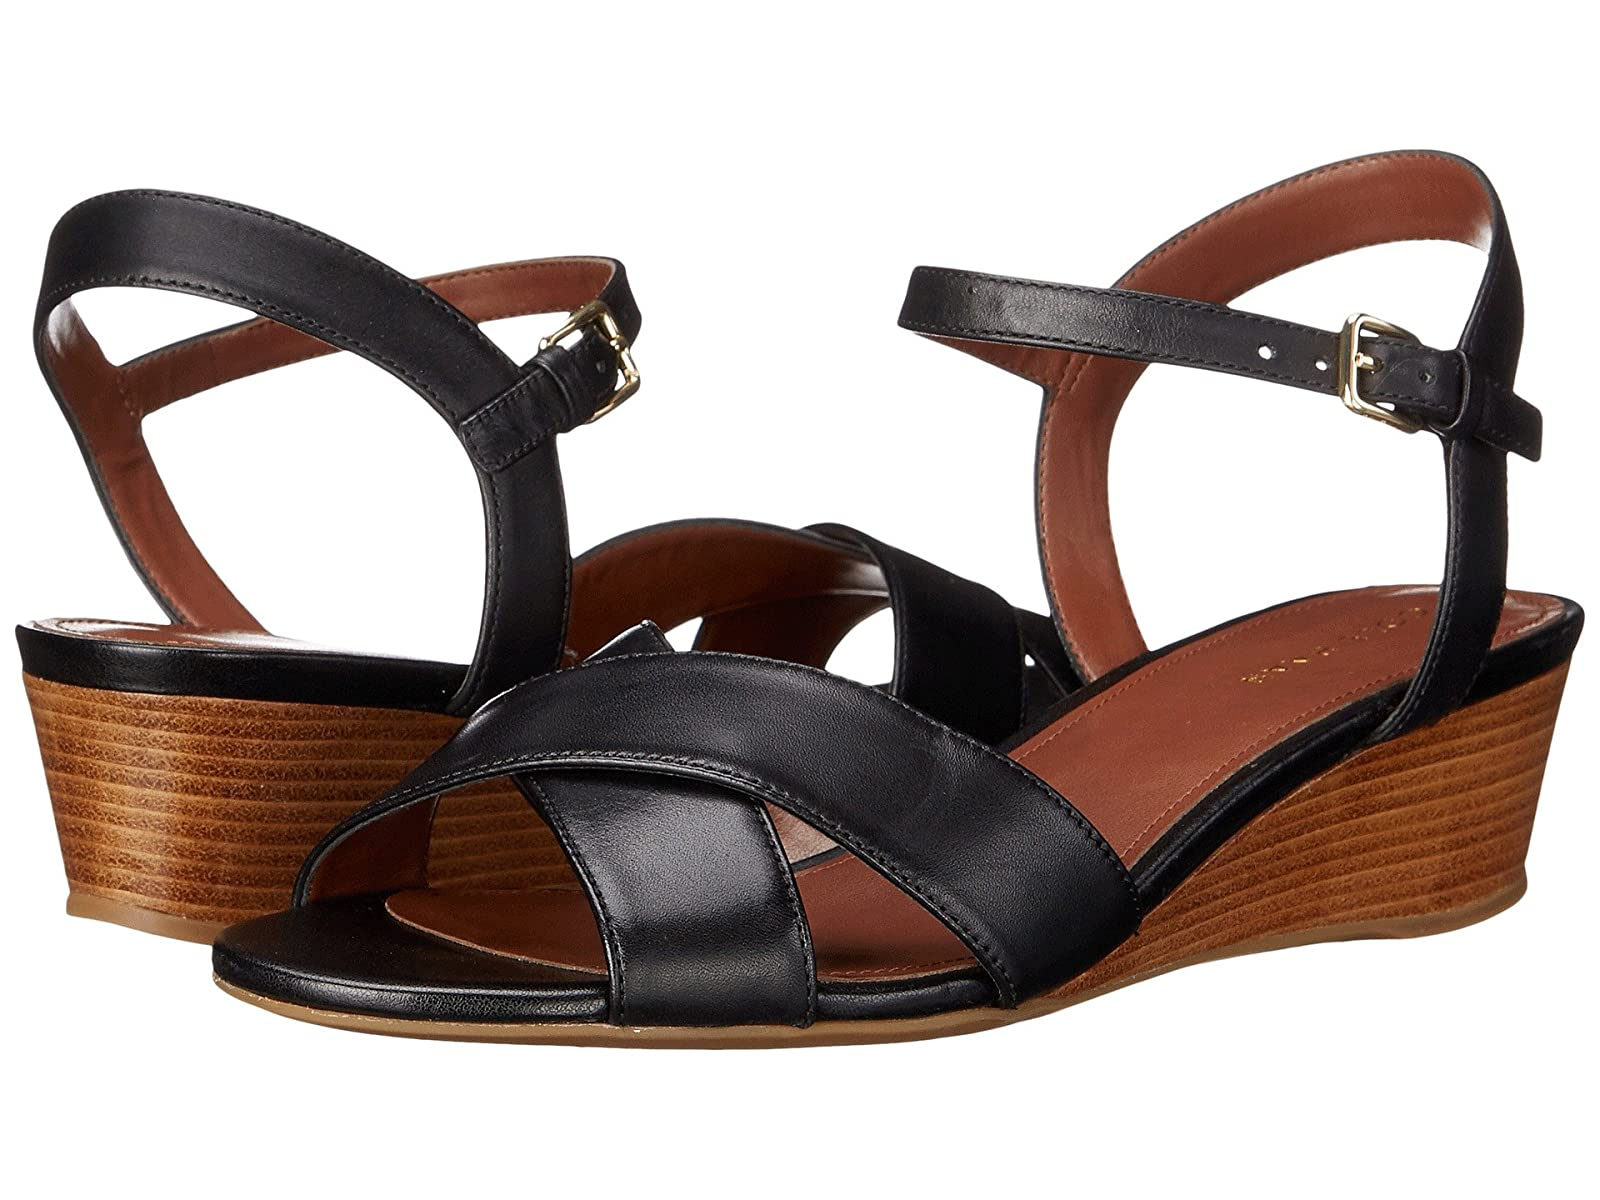 Cole Haan Elsie Cross Wedge 40 IICheap and distinctive eye-catching shoes